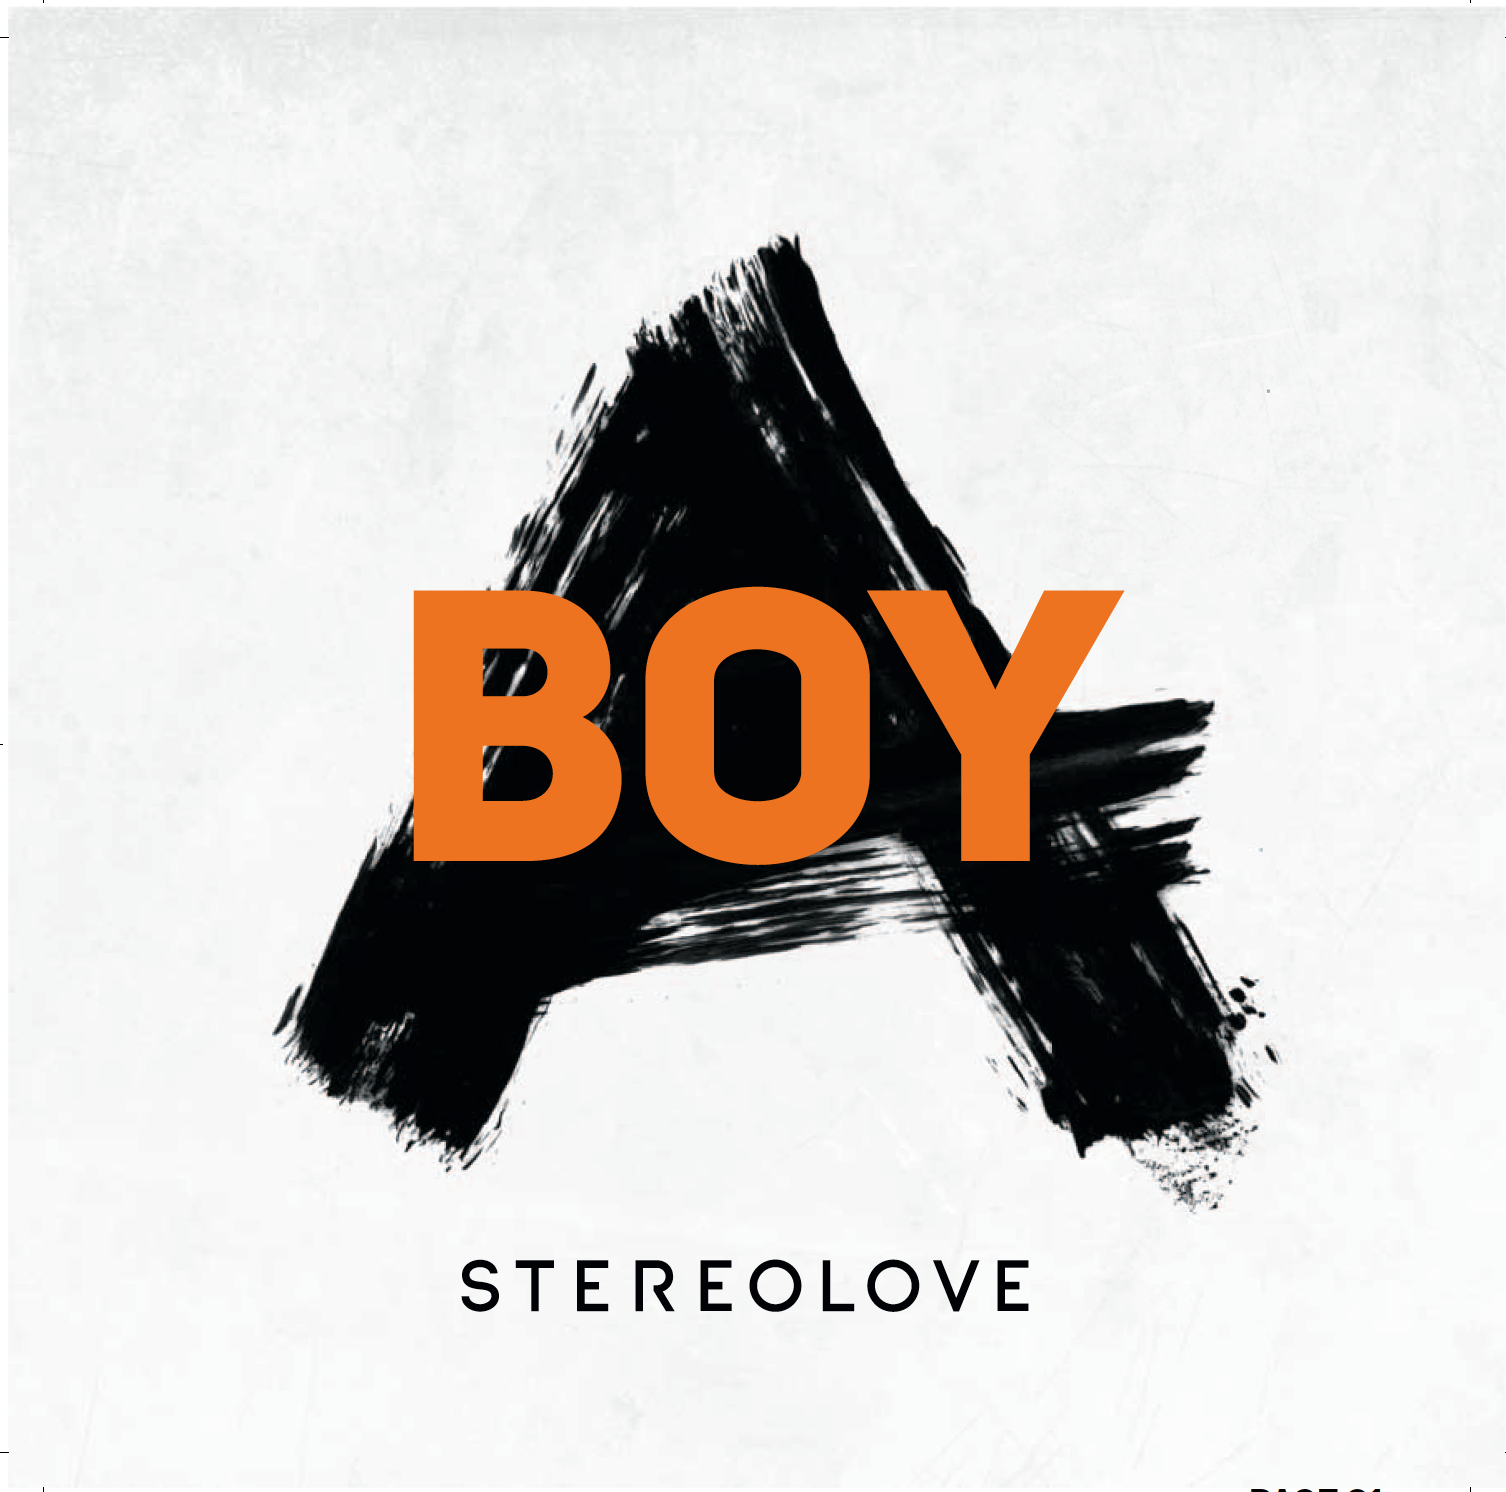 2015 Boy A, Stereolove